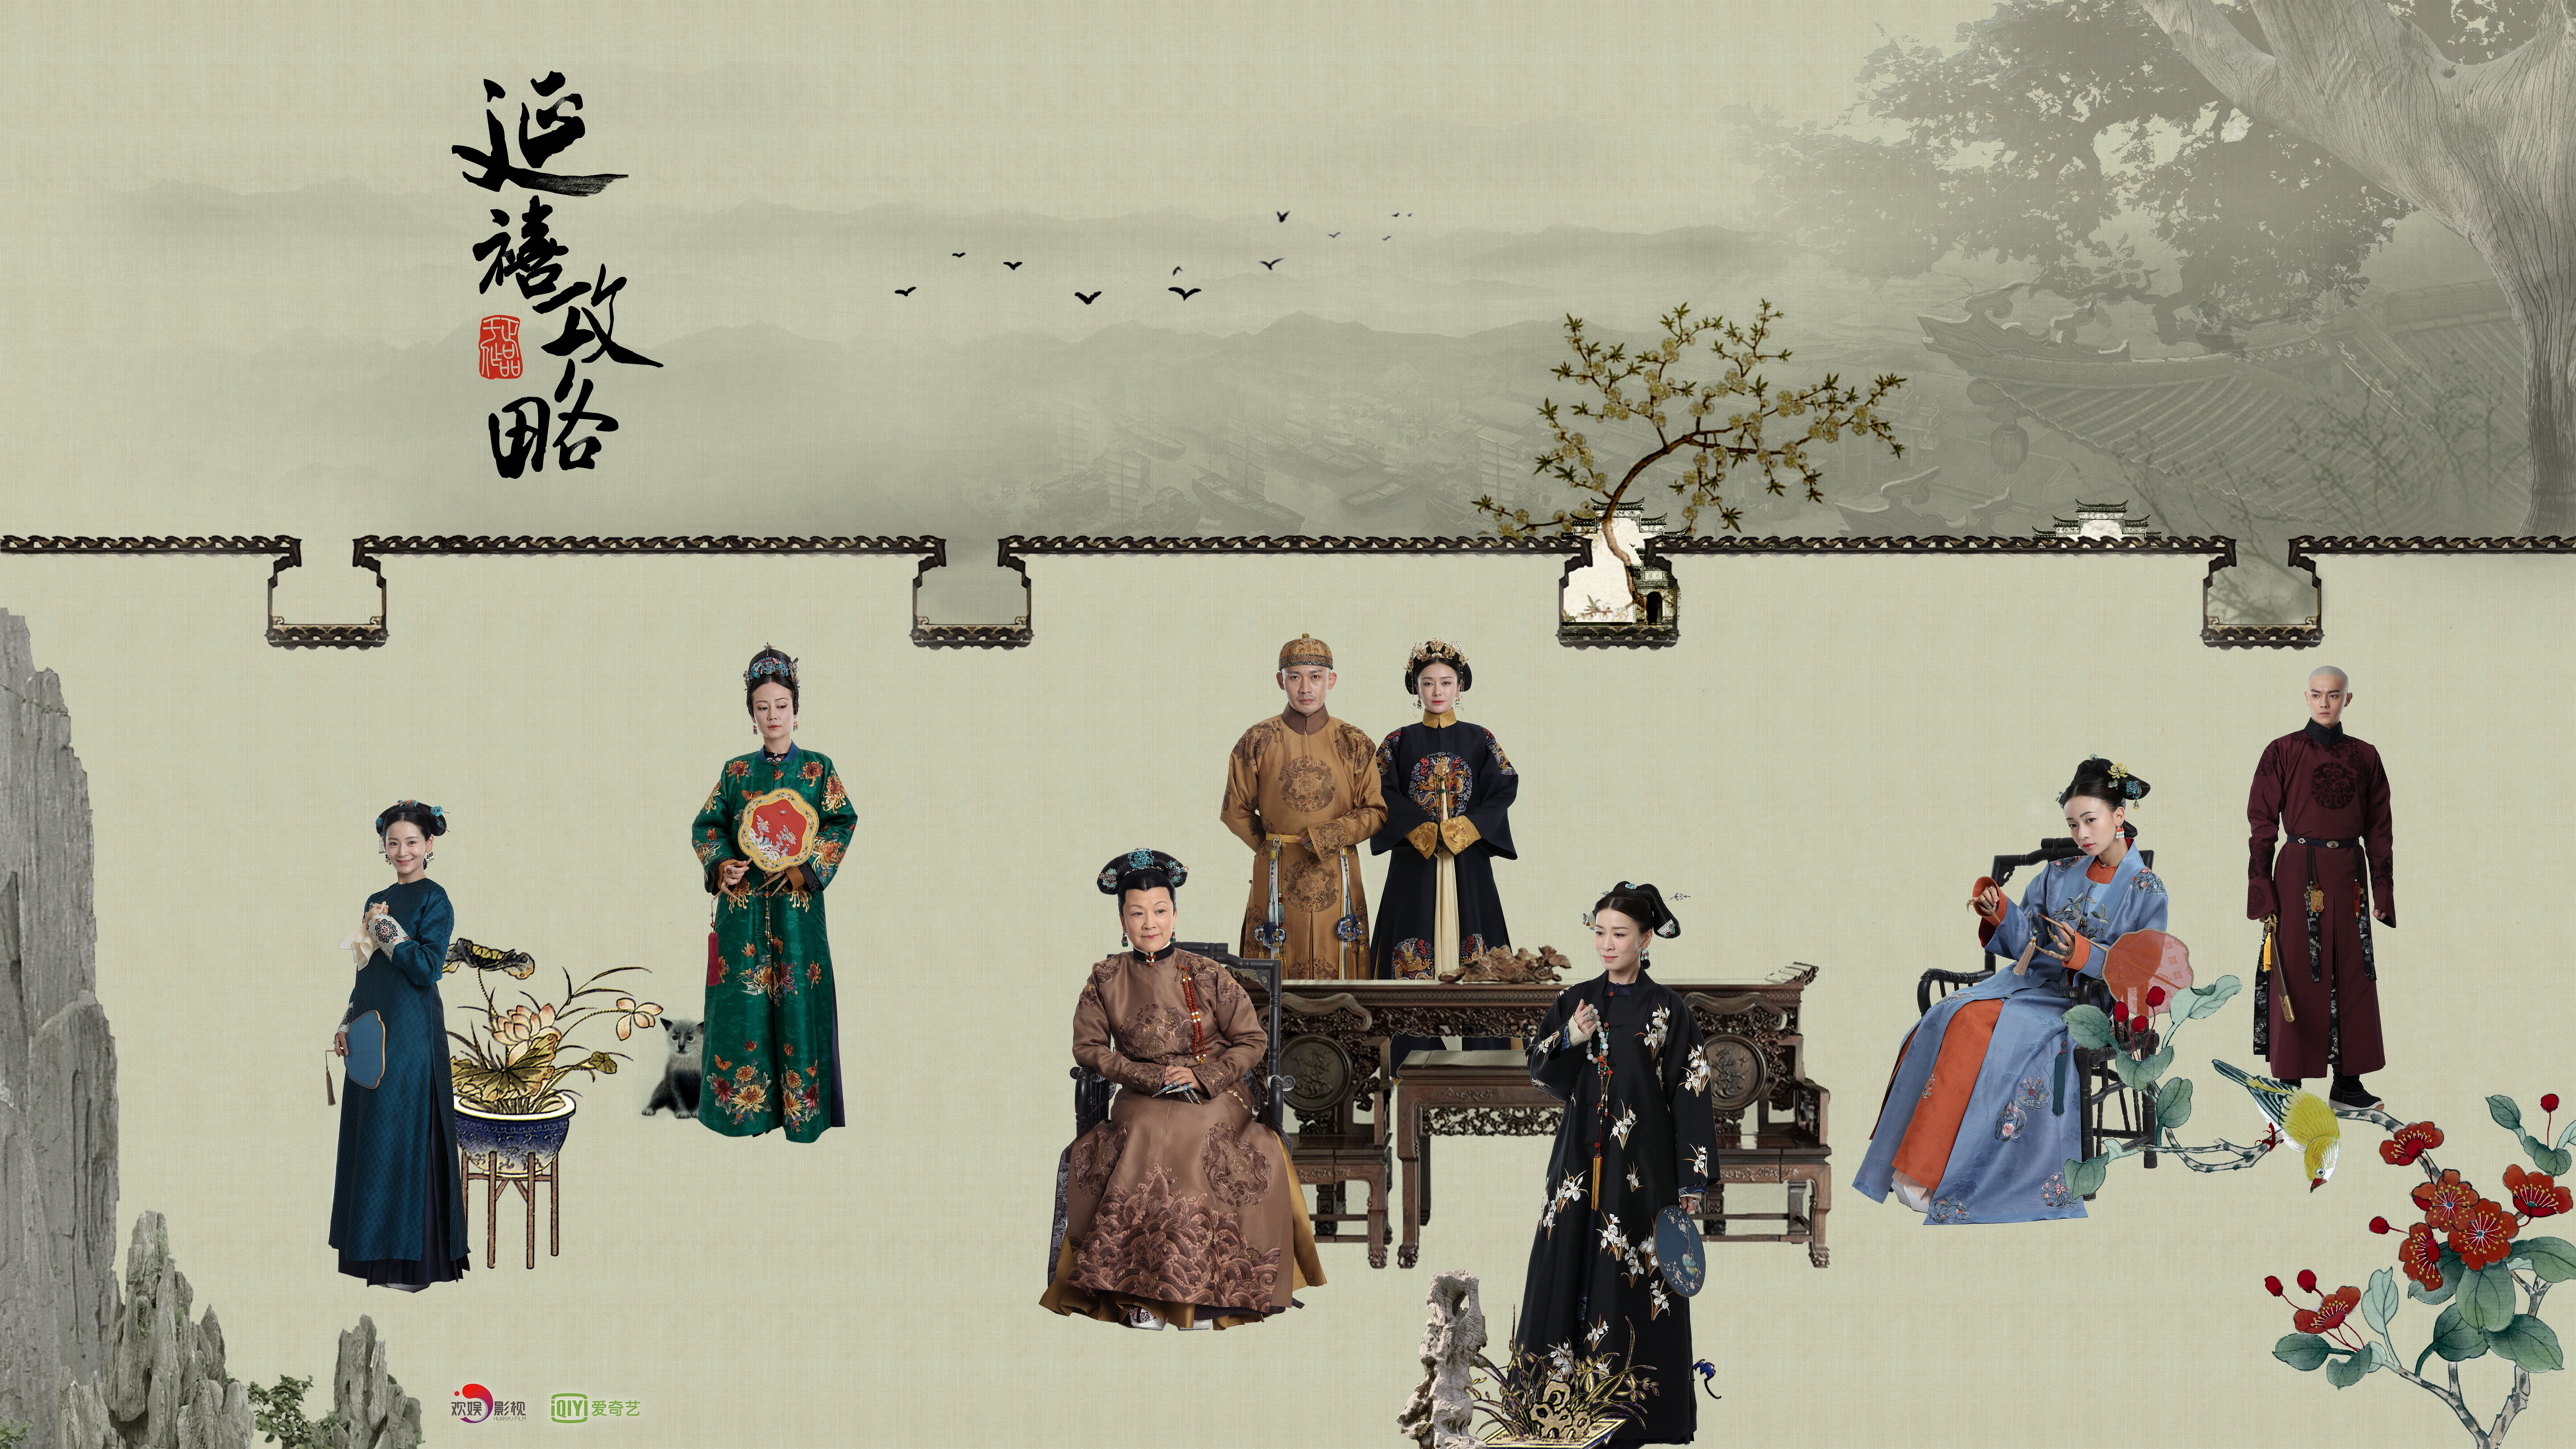 Wallpaper Story of Yanxi Palace, 2018 TV series 7680x4320 UHD 8K Picture, Image